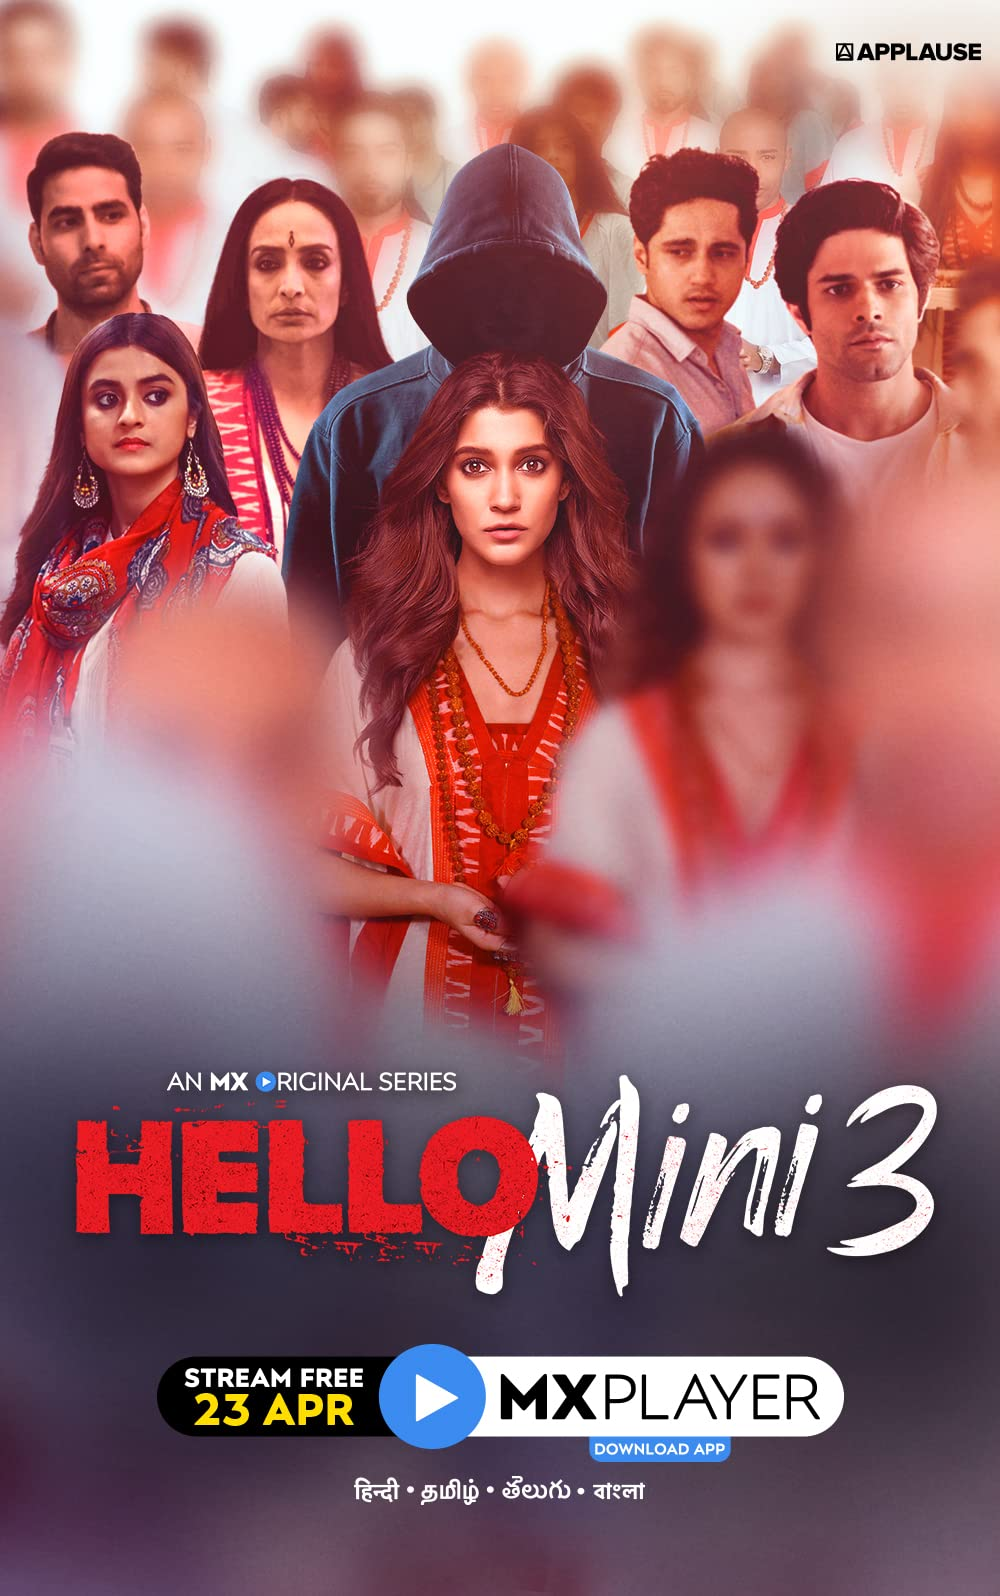 Hello Mini 3 2021 S03 Hindi MX Original Complete Web Series 720p HDRip 1.7GB Download